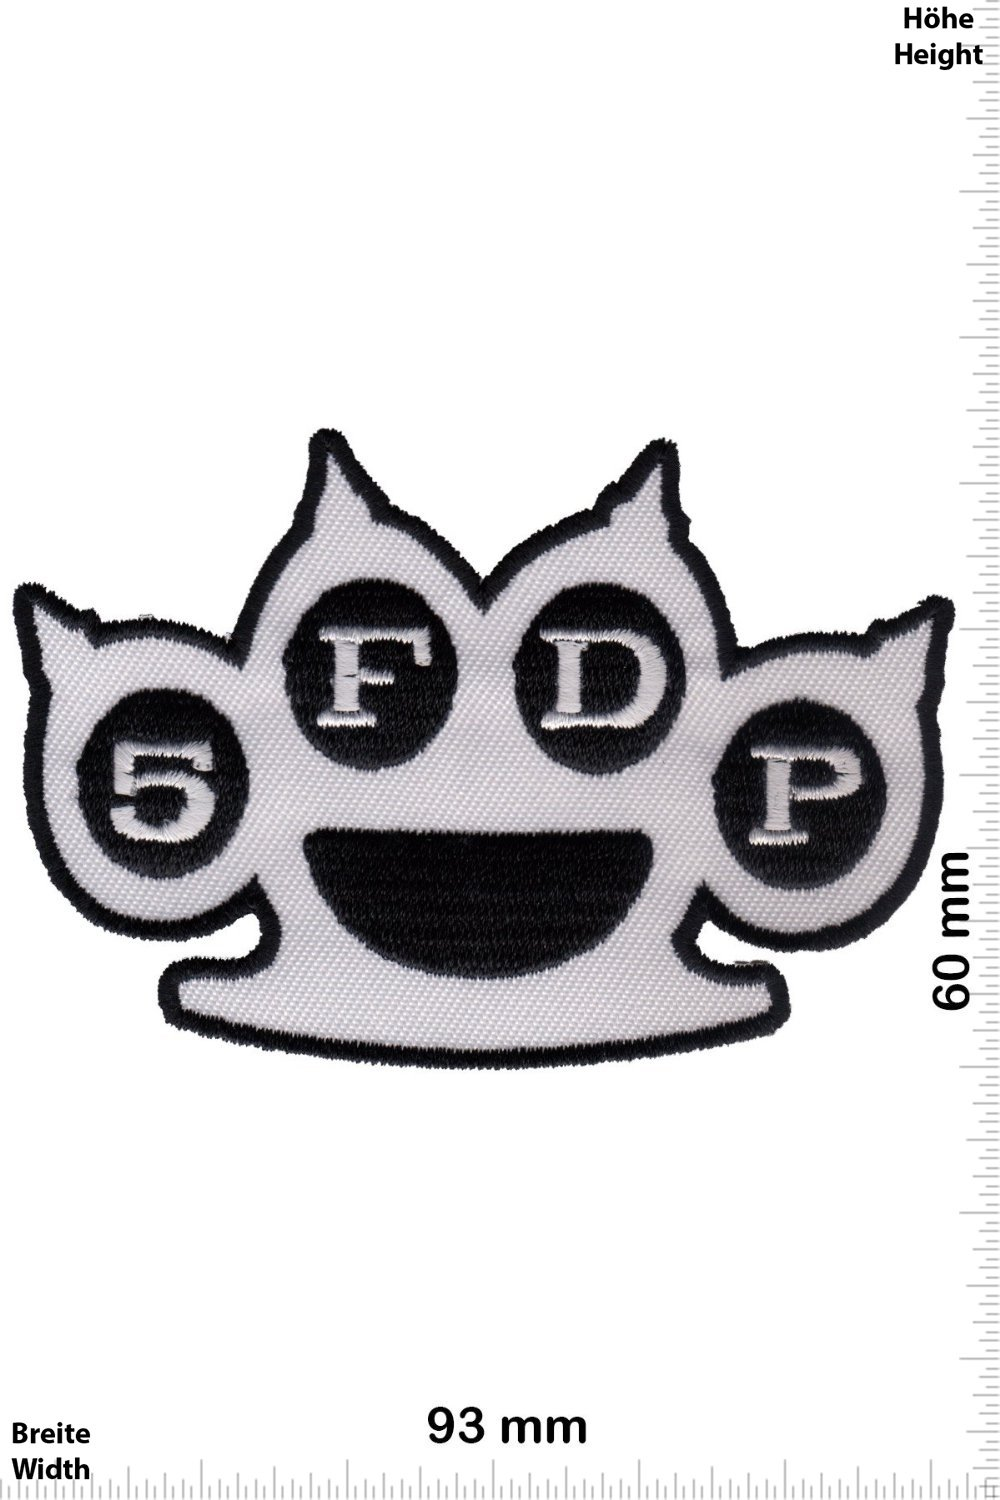 5fdp Patches Metalband Finger Knuckleduster Punch Five Death zOOBWA6